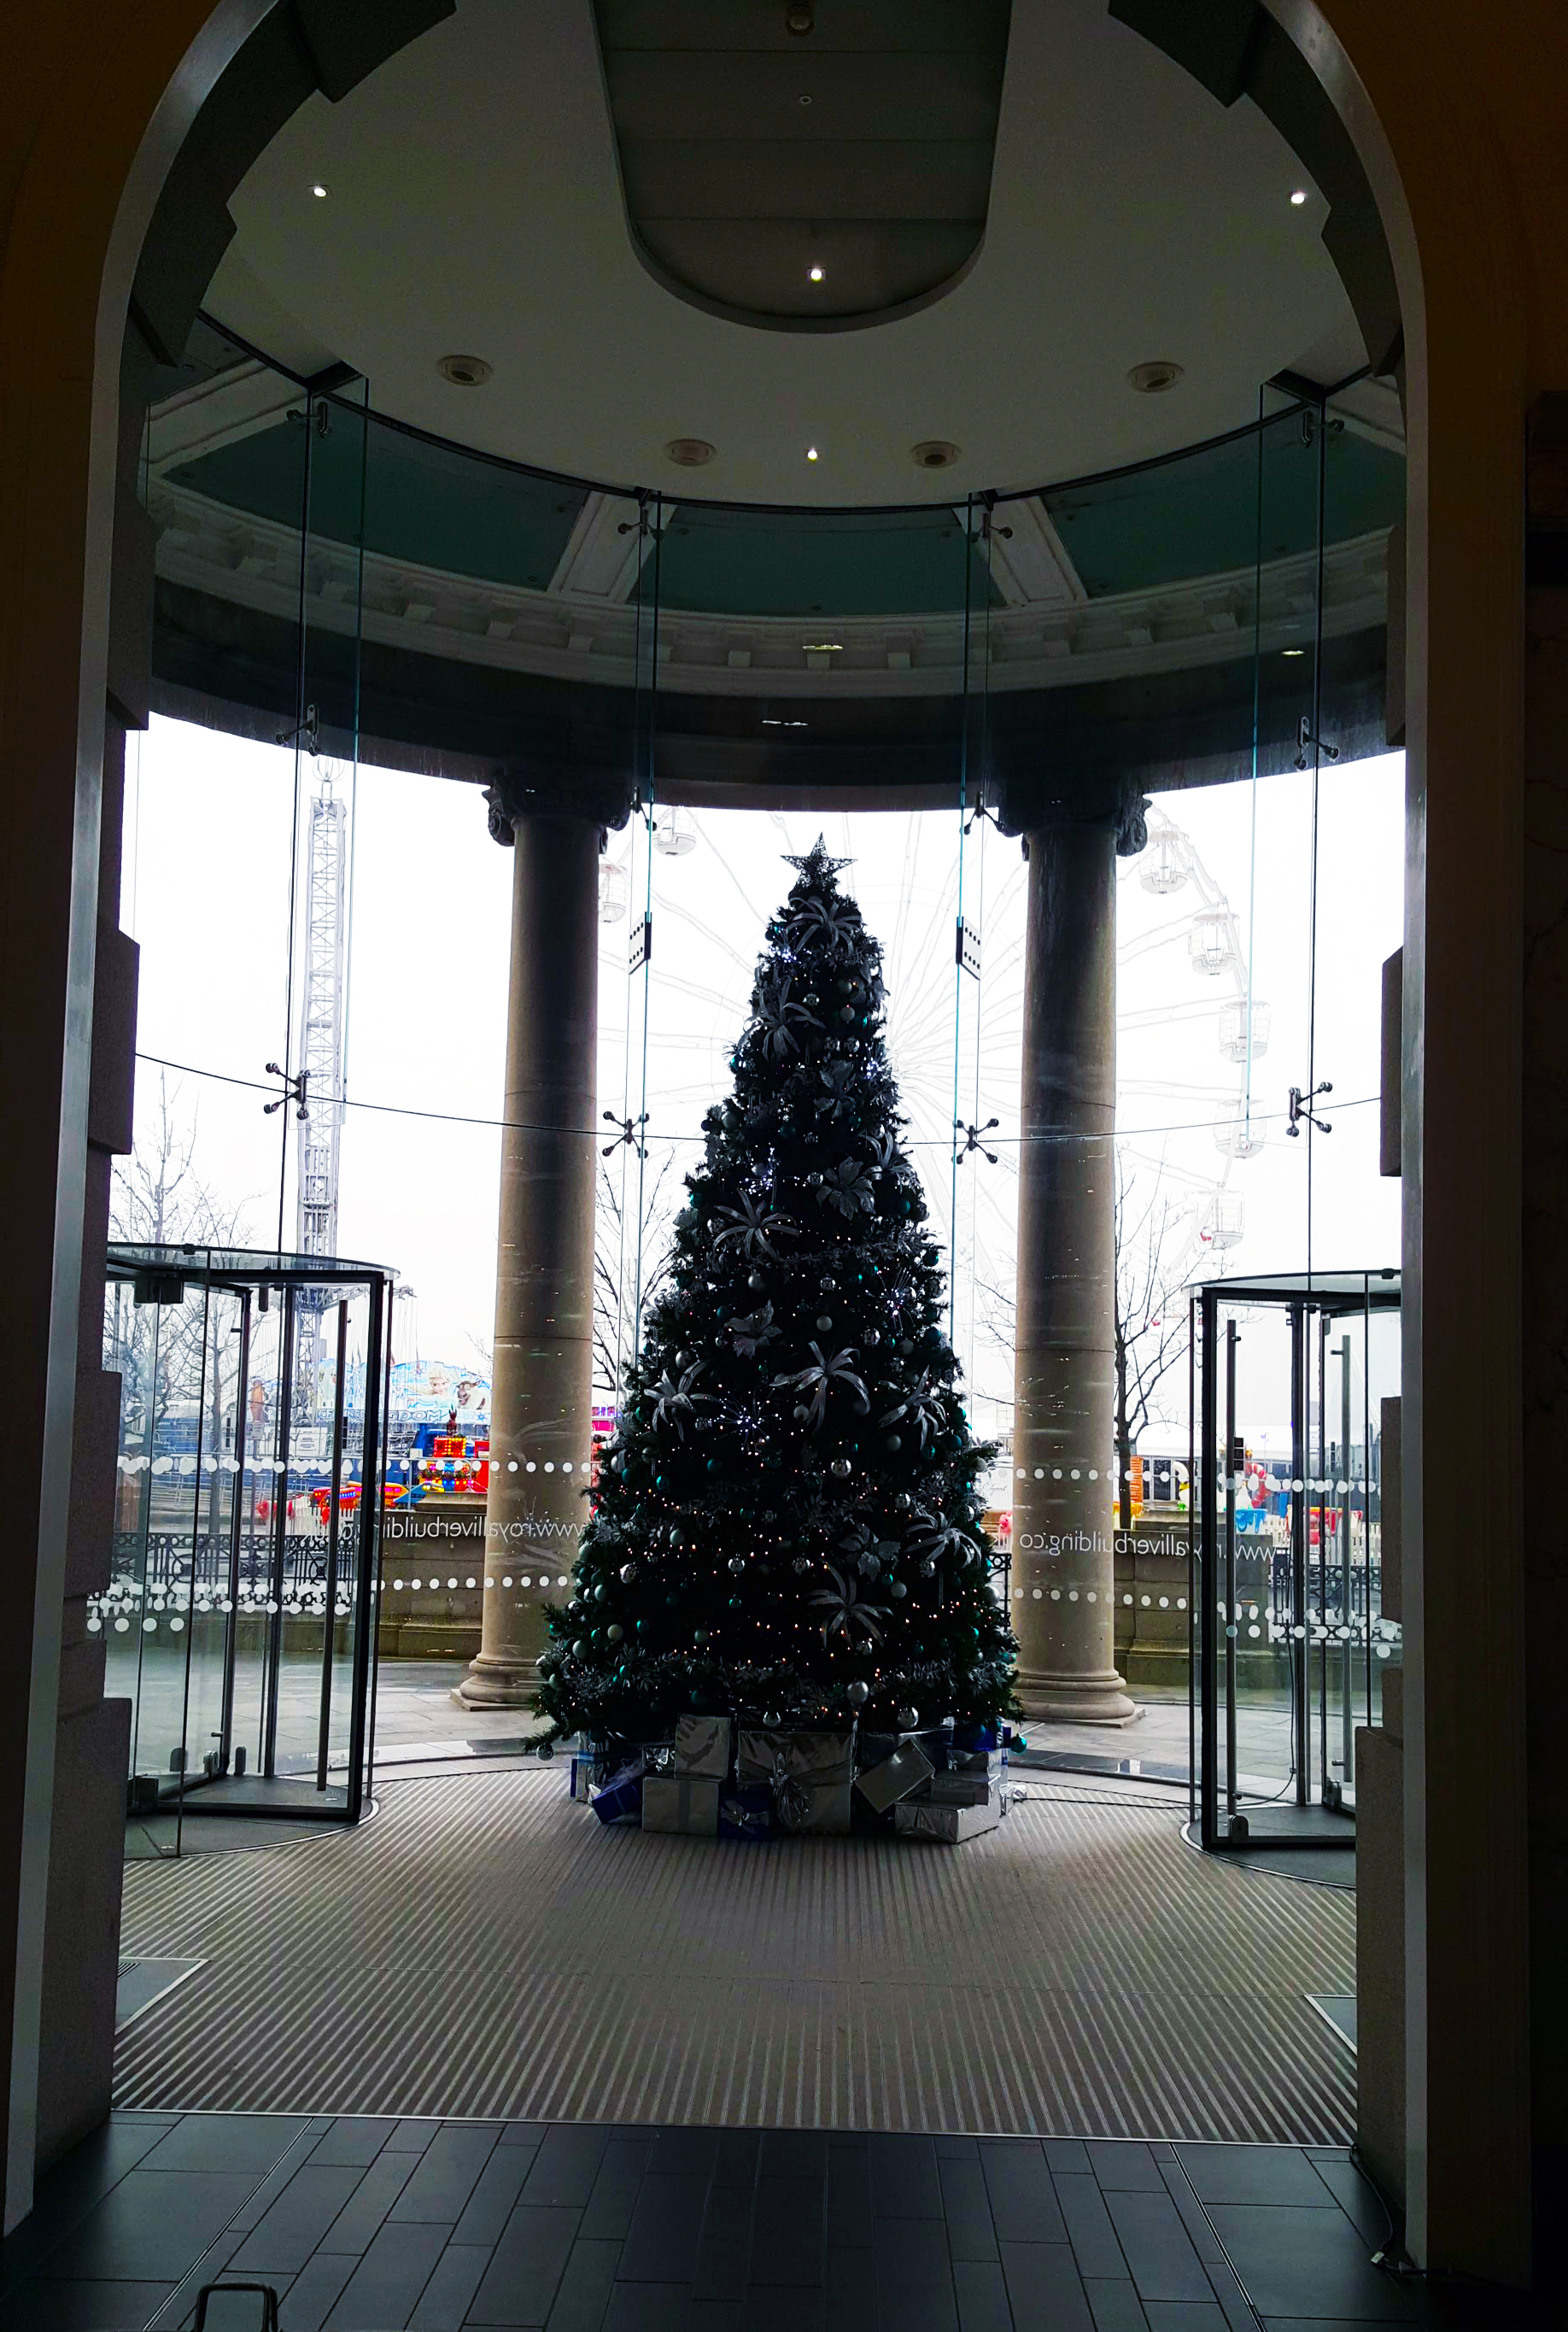 From inside the Liver Building in Liverpool